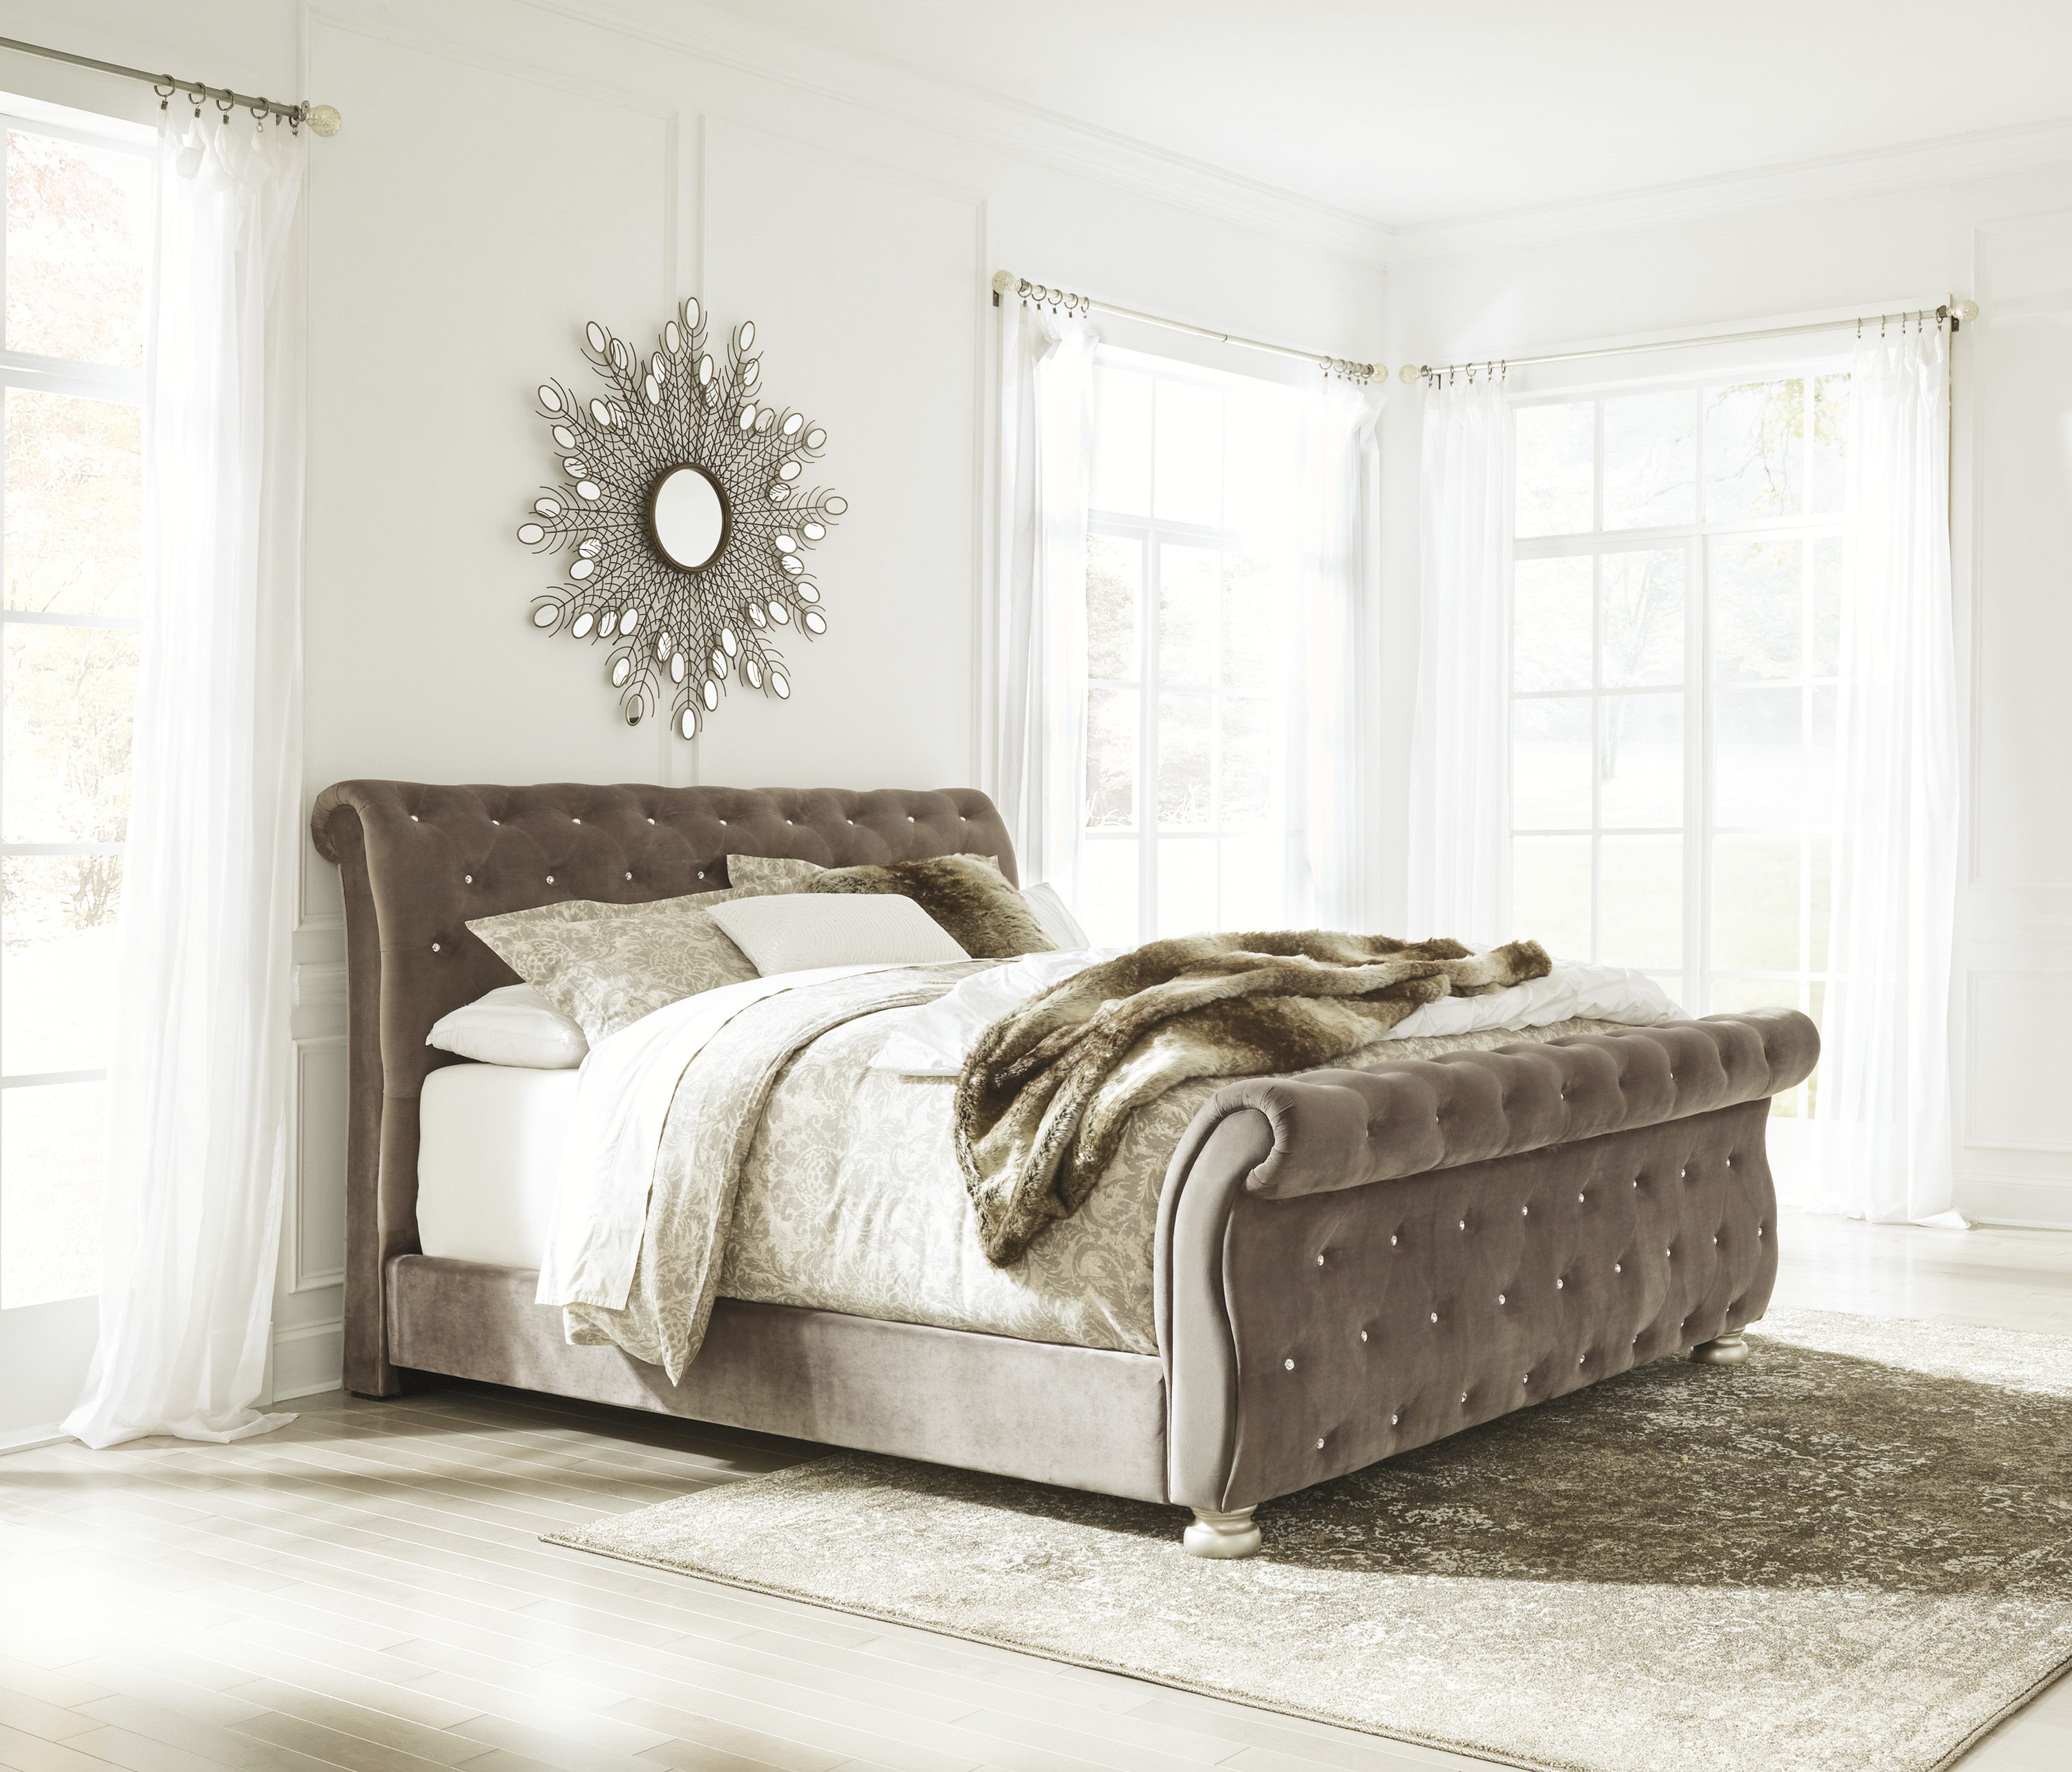 Ashley Furniture Cassimore Queen Upholstered Bed The Classy Home